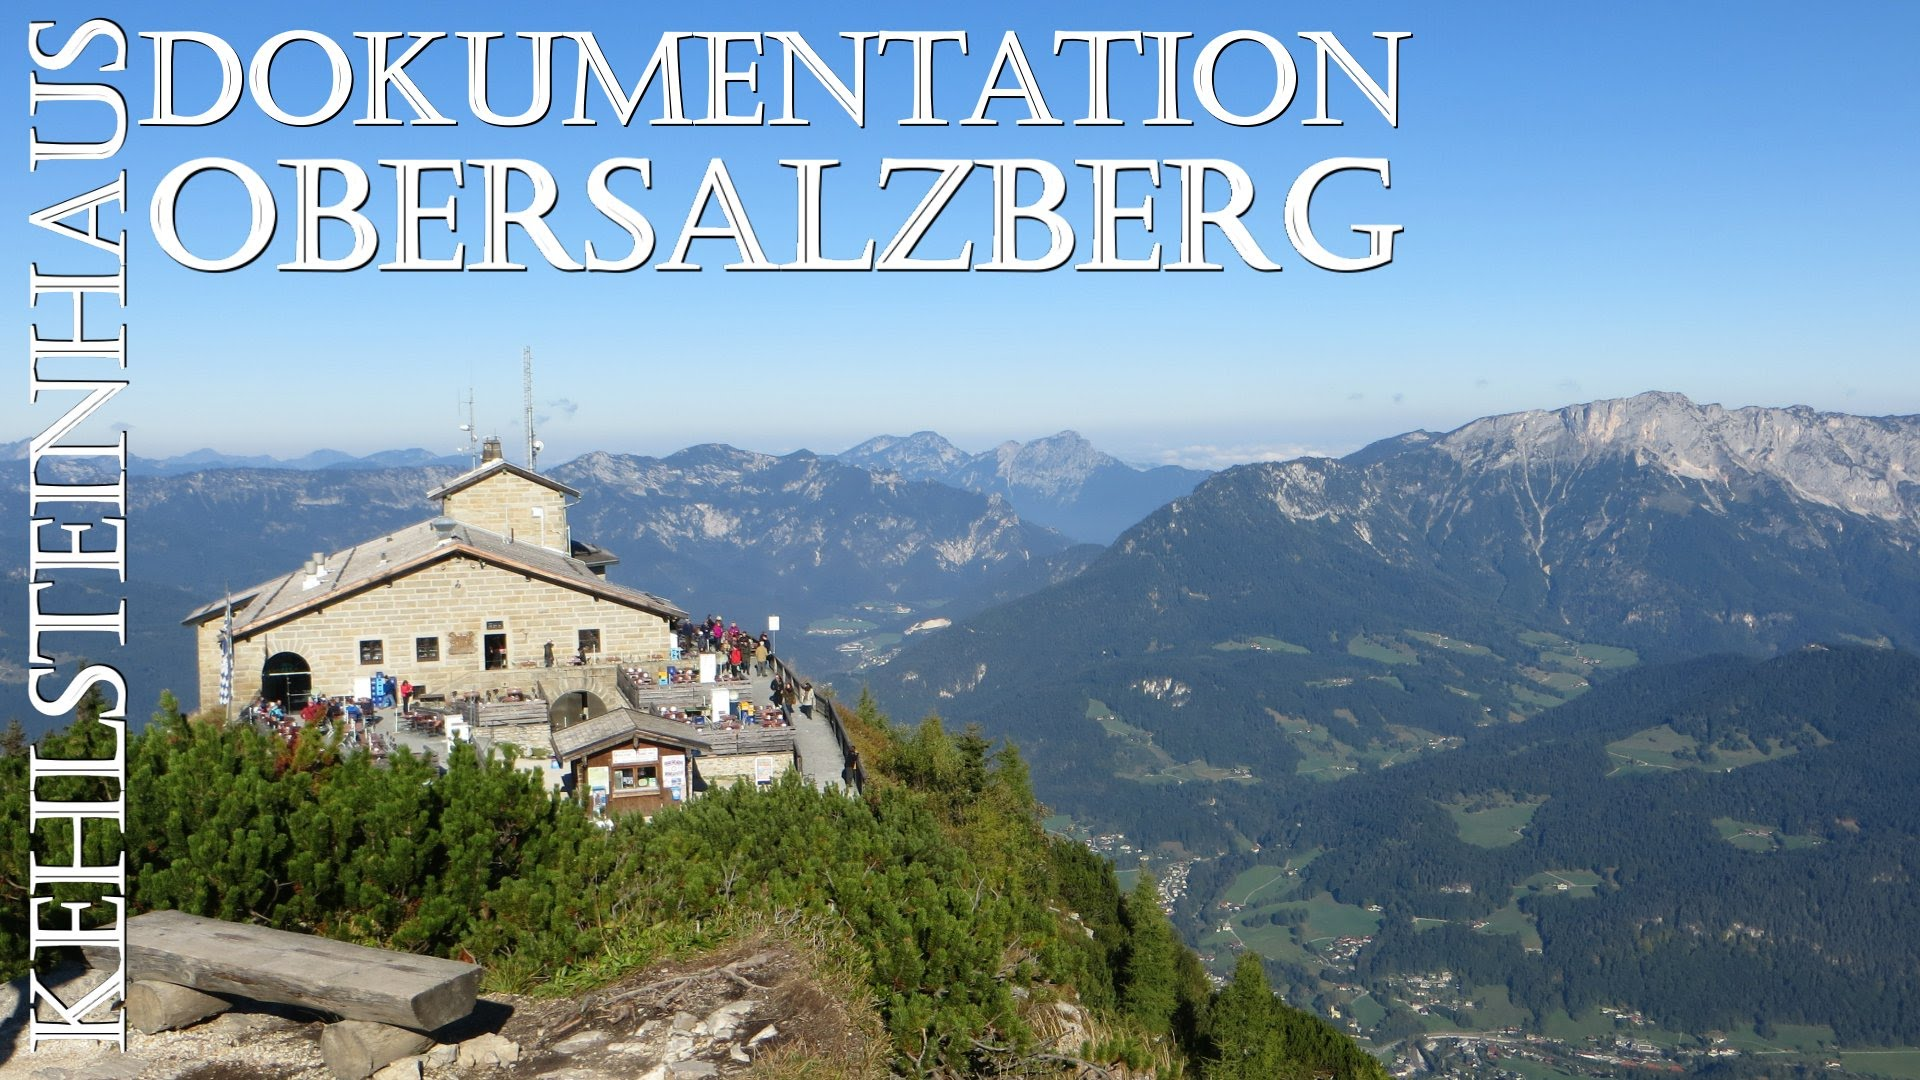 Dokumentation Obersalzberg The Bavarian Alps, Kehlsteinhaus Dokumentation Obersalzberg - YouTube